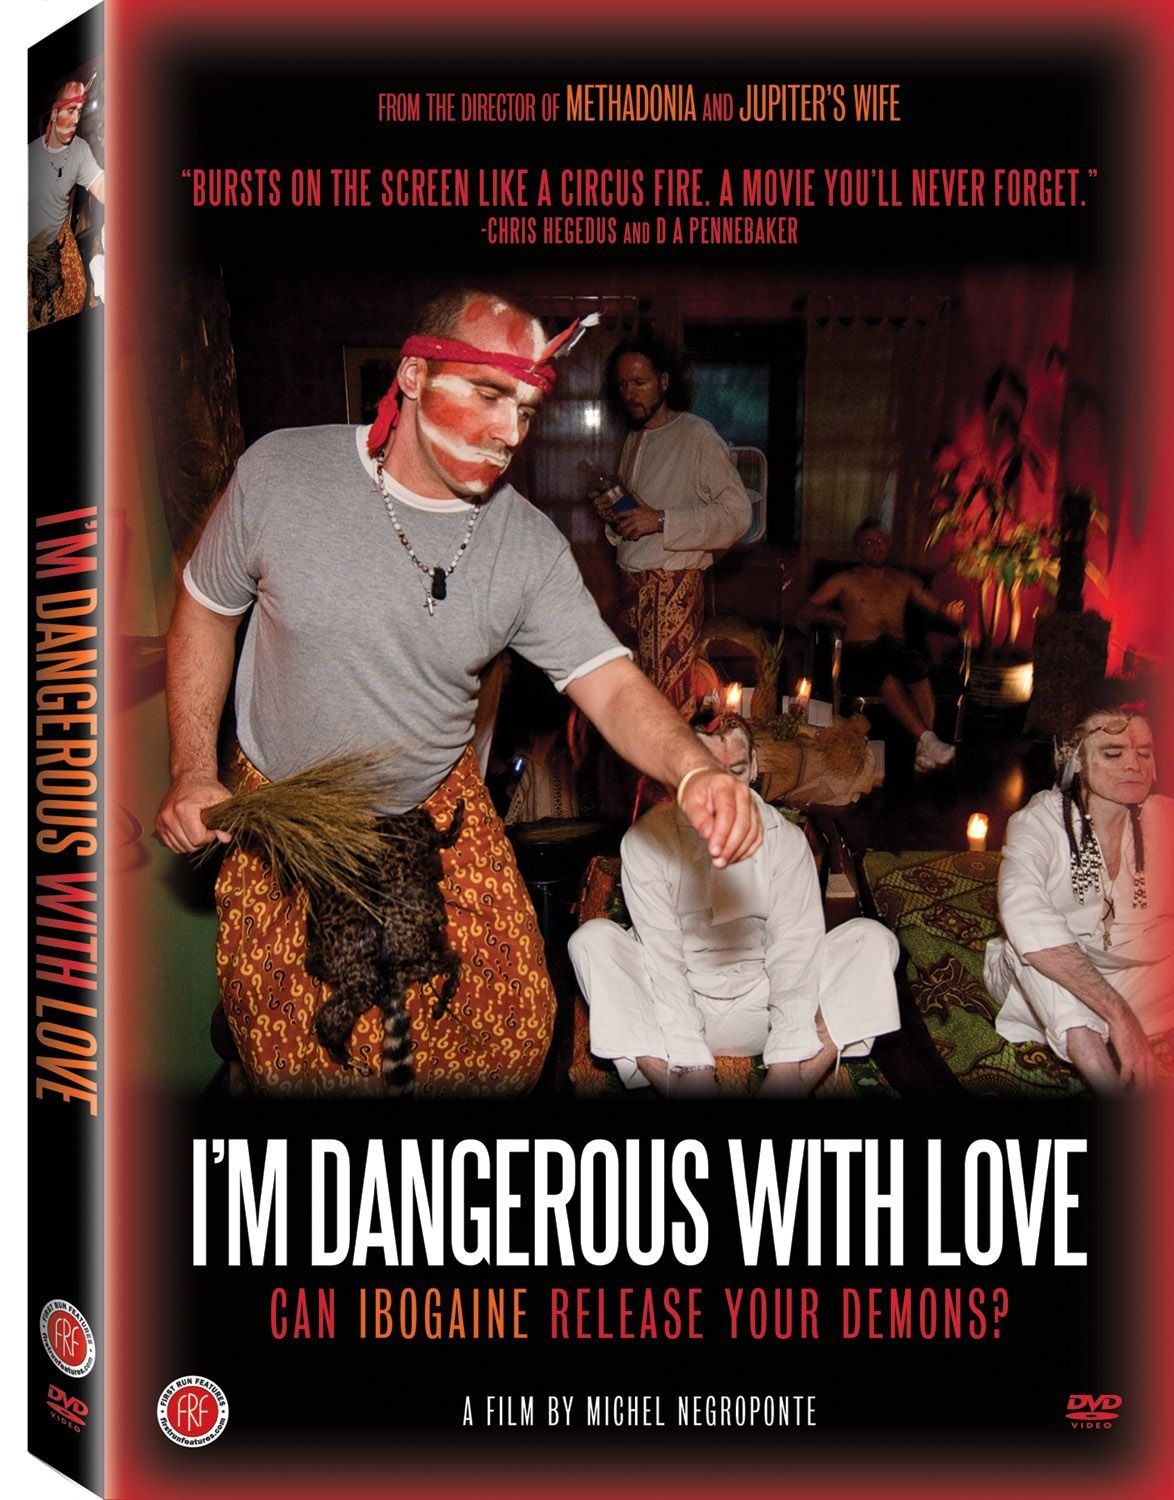 DVD : Michel Negroponte - I'm Dangerous With Love (Full Frame)